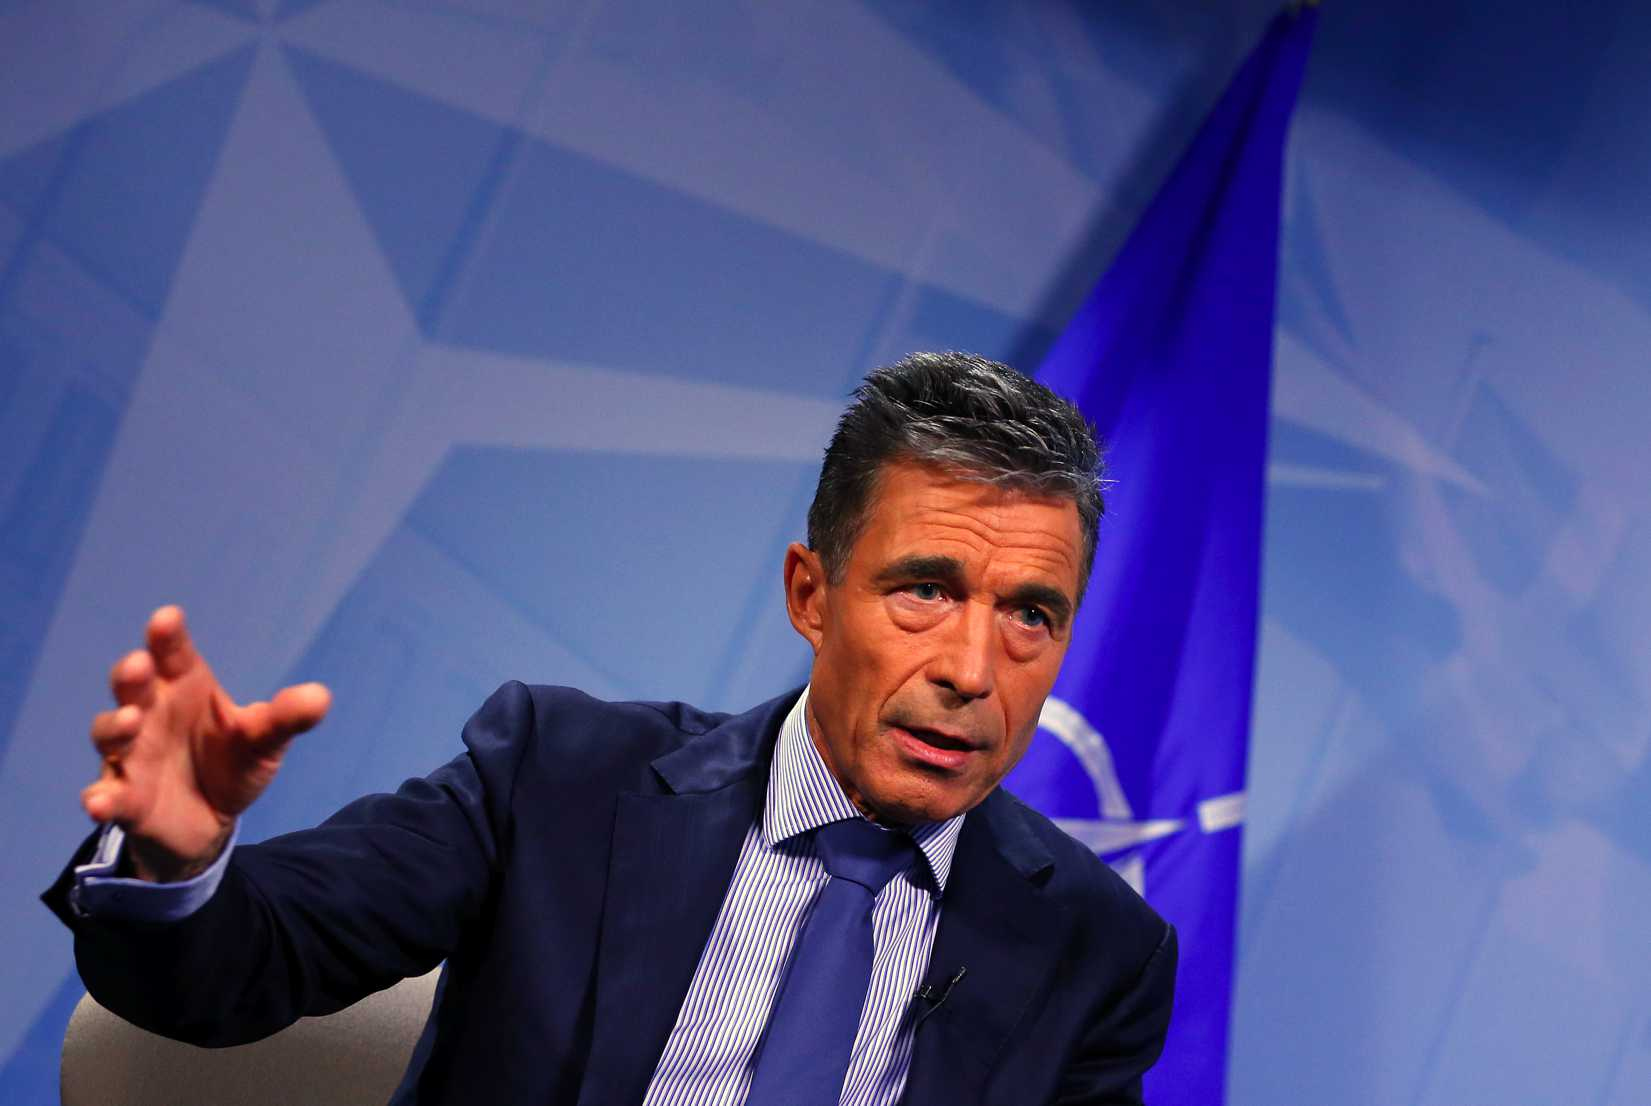 NATO Secretary General Anders Fogh Rasmussen speaks during an interview with Reuters in Brussels on August 11, 2014